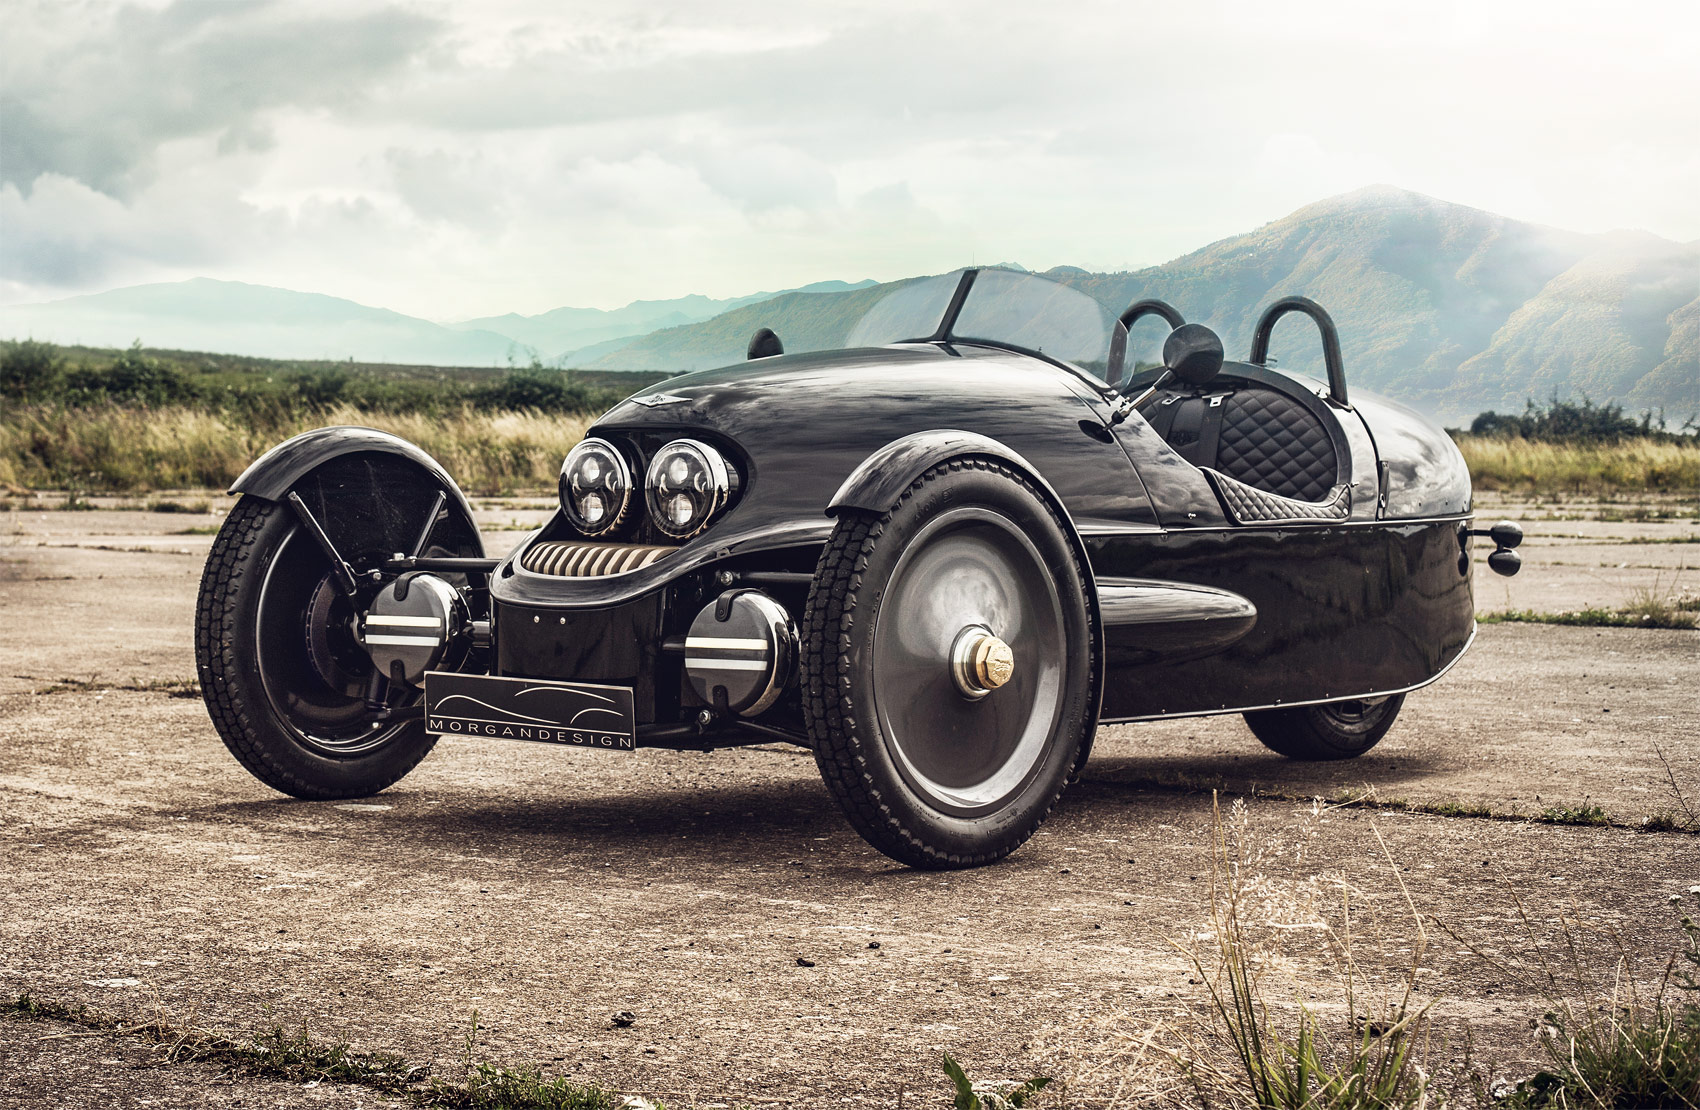 Morgan 1909 Edition EV3 – An Iconic Design With Selfridges' Flair For Fashion